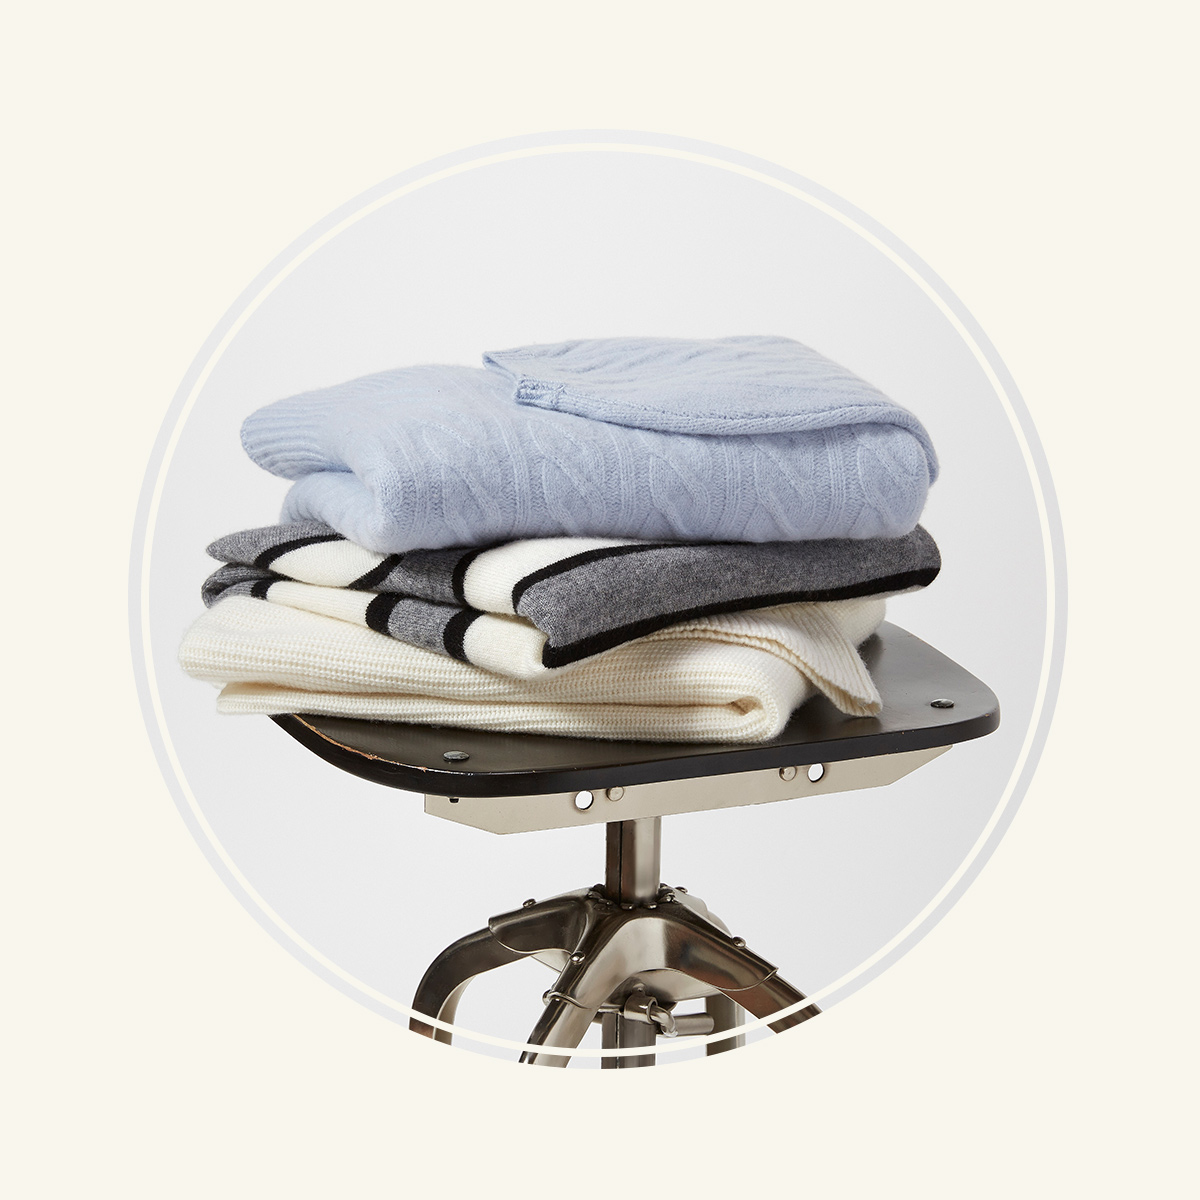 Stack of sweaters on a stool.